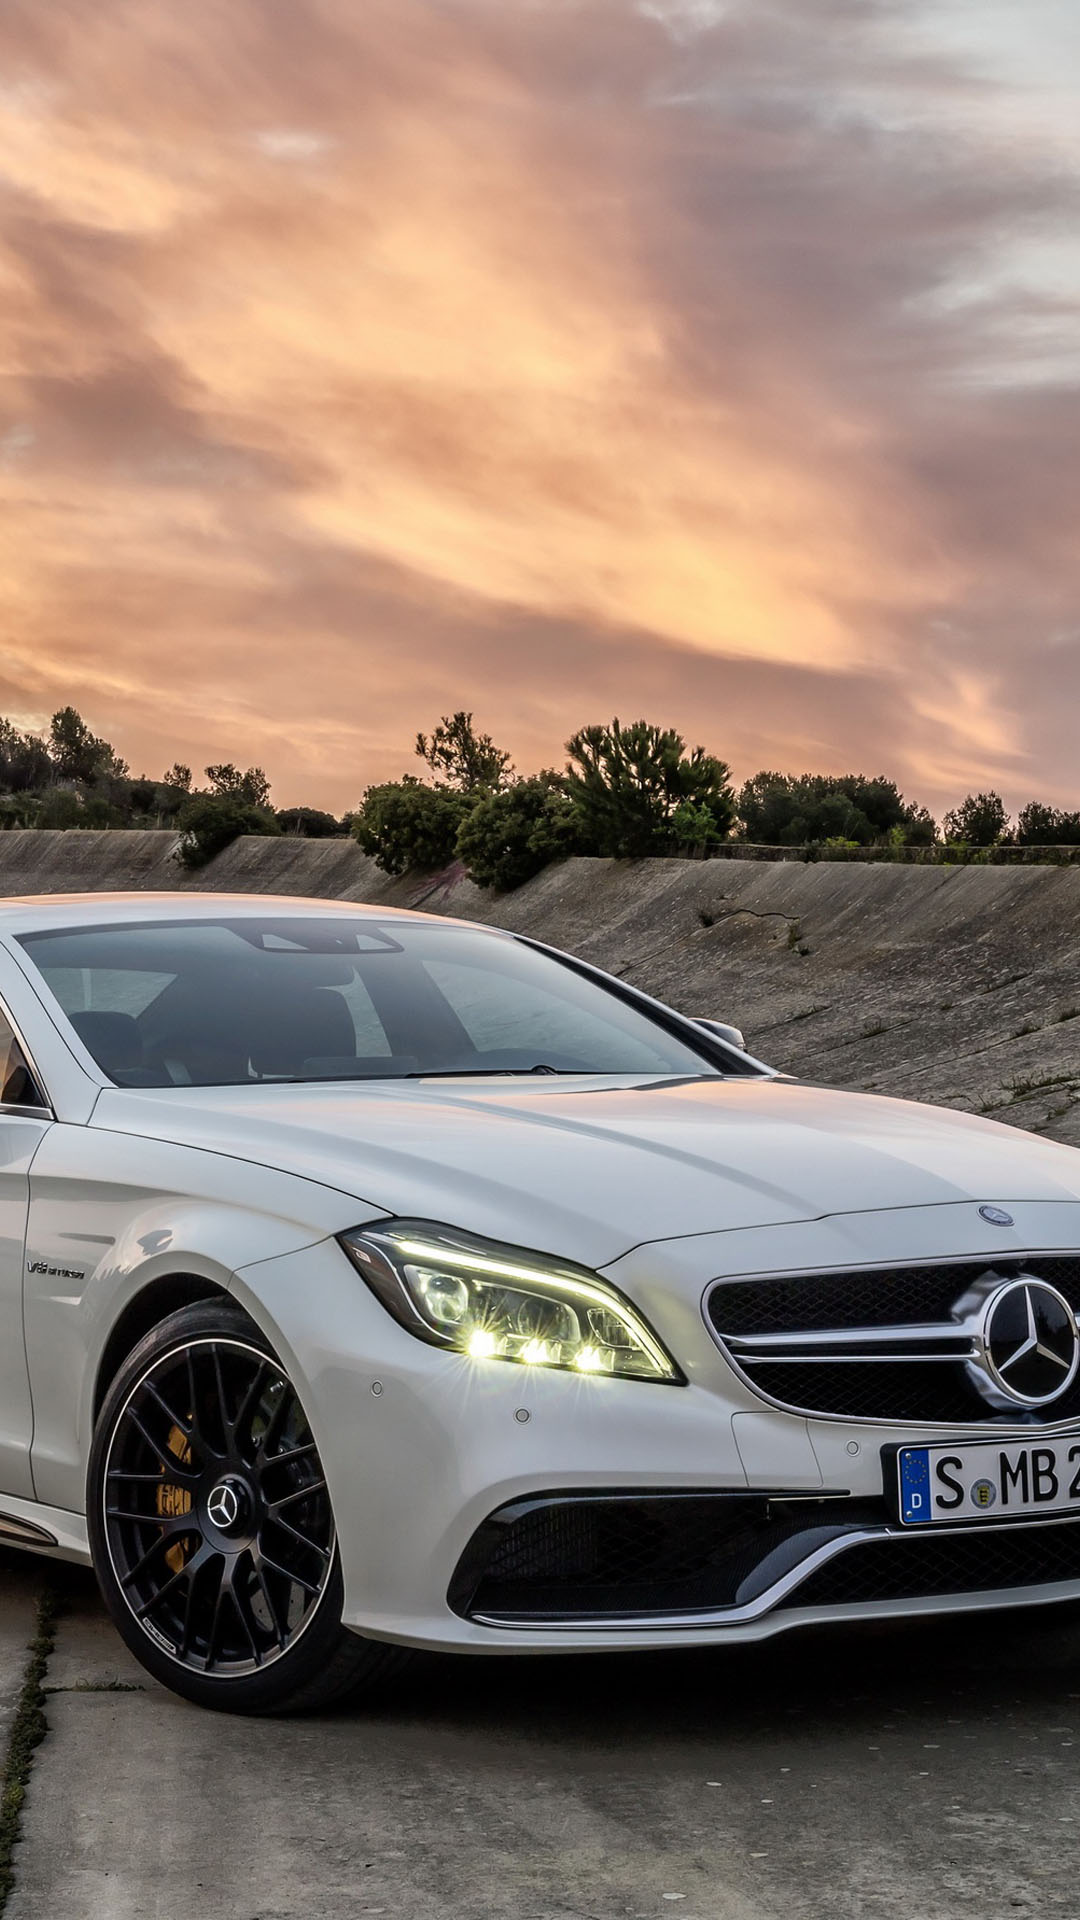 Mercedes benz wallpapers for iphone 6 plus wallpaper images for Contact mercedes benz financial